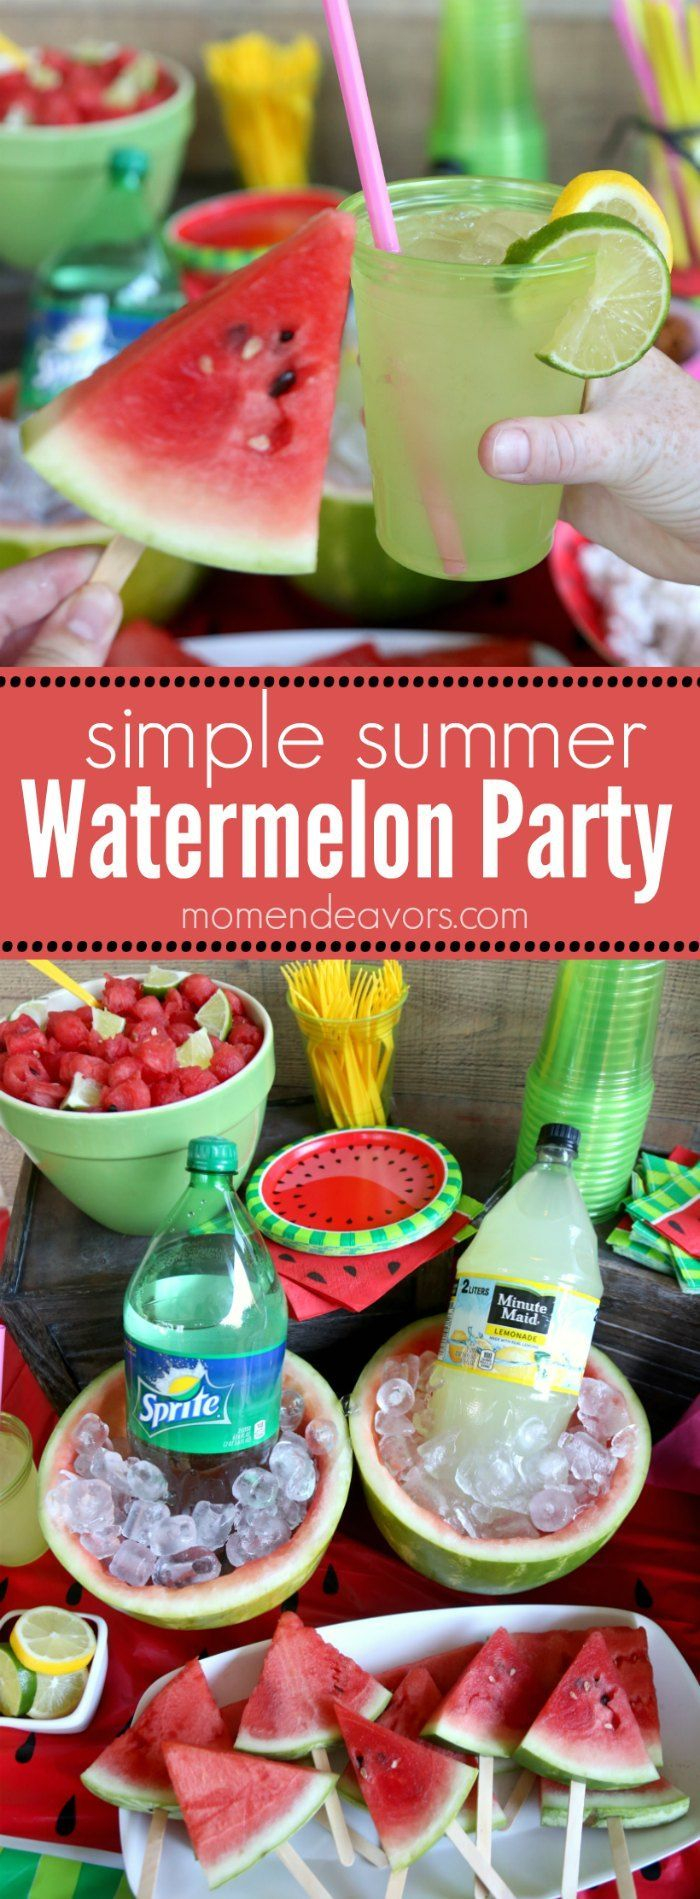 Summer Watermelon Party Ideas - some cute, simple, and fun watermelon ideas for a refreshing summer party! #SummerRefreshment #Kroger AD